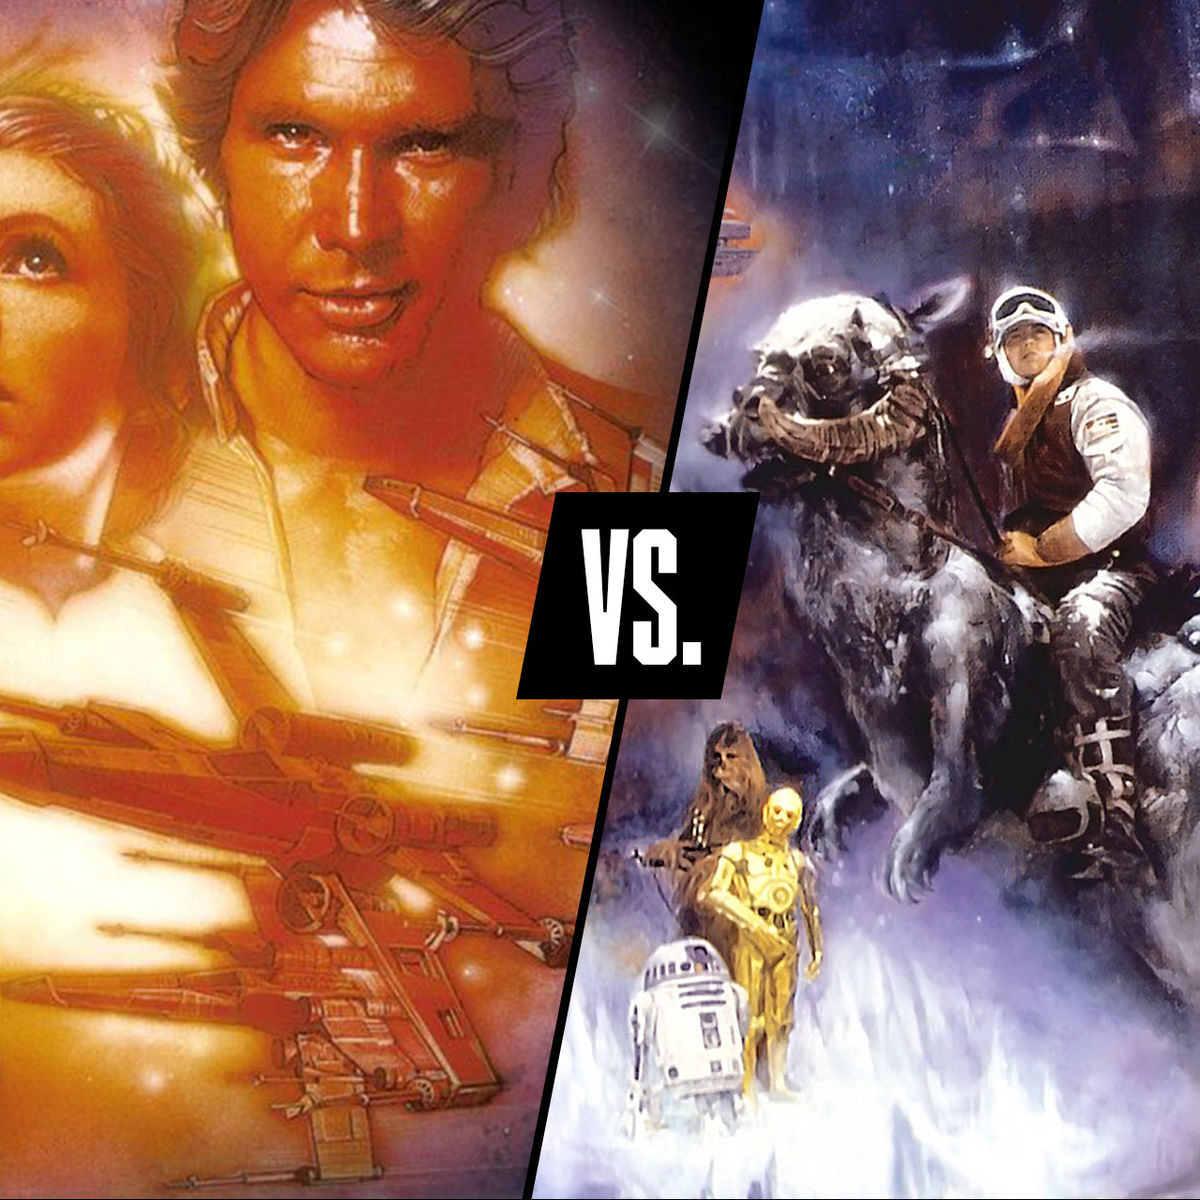 Star Wars vs Empire Strikes Back